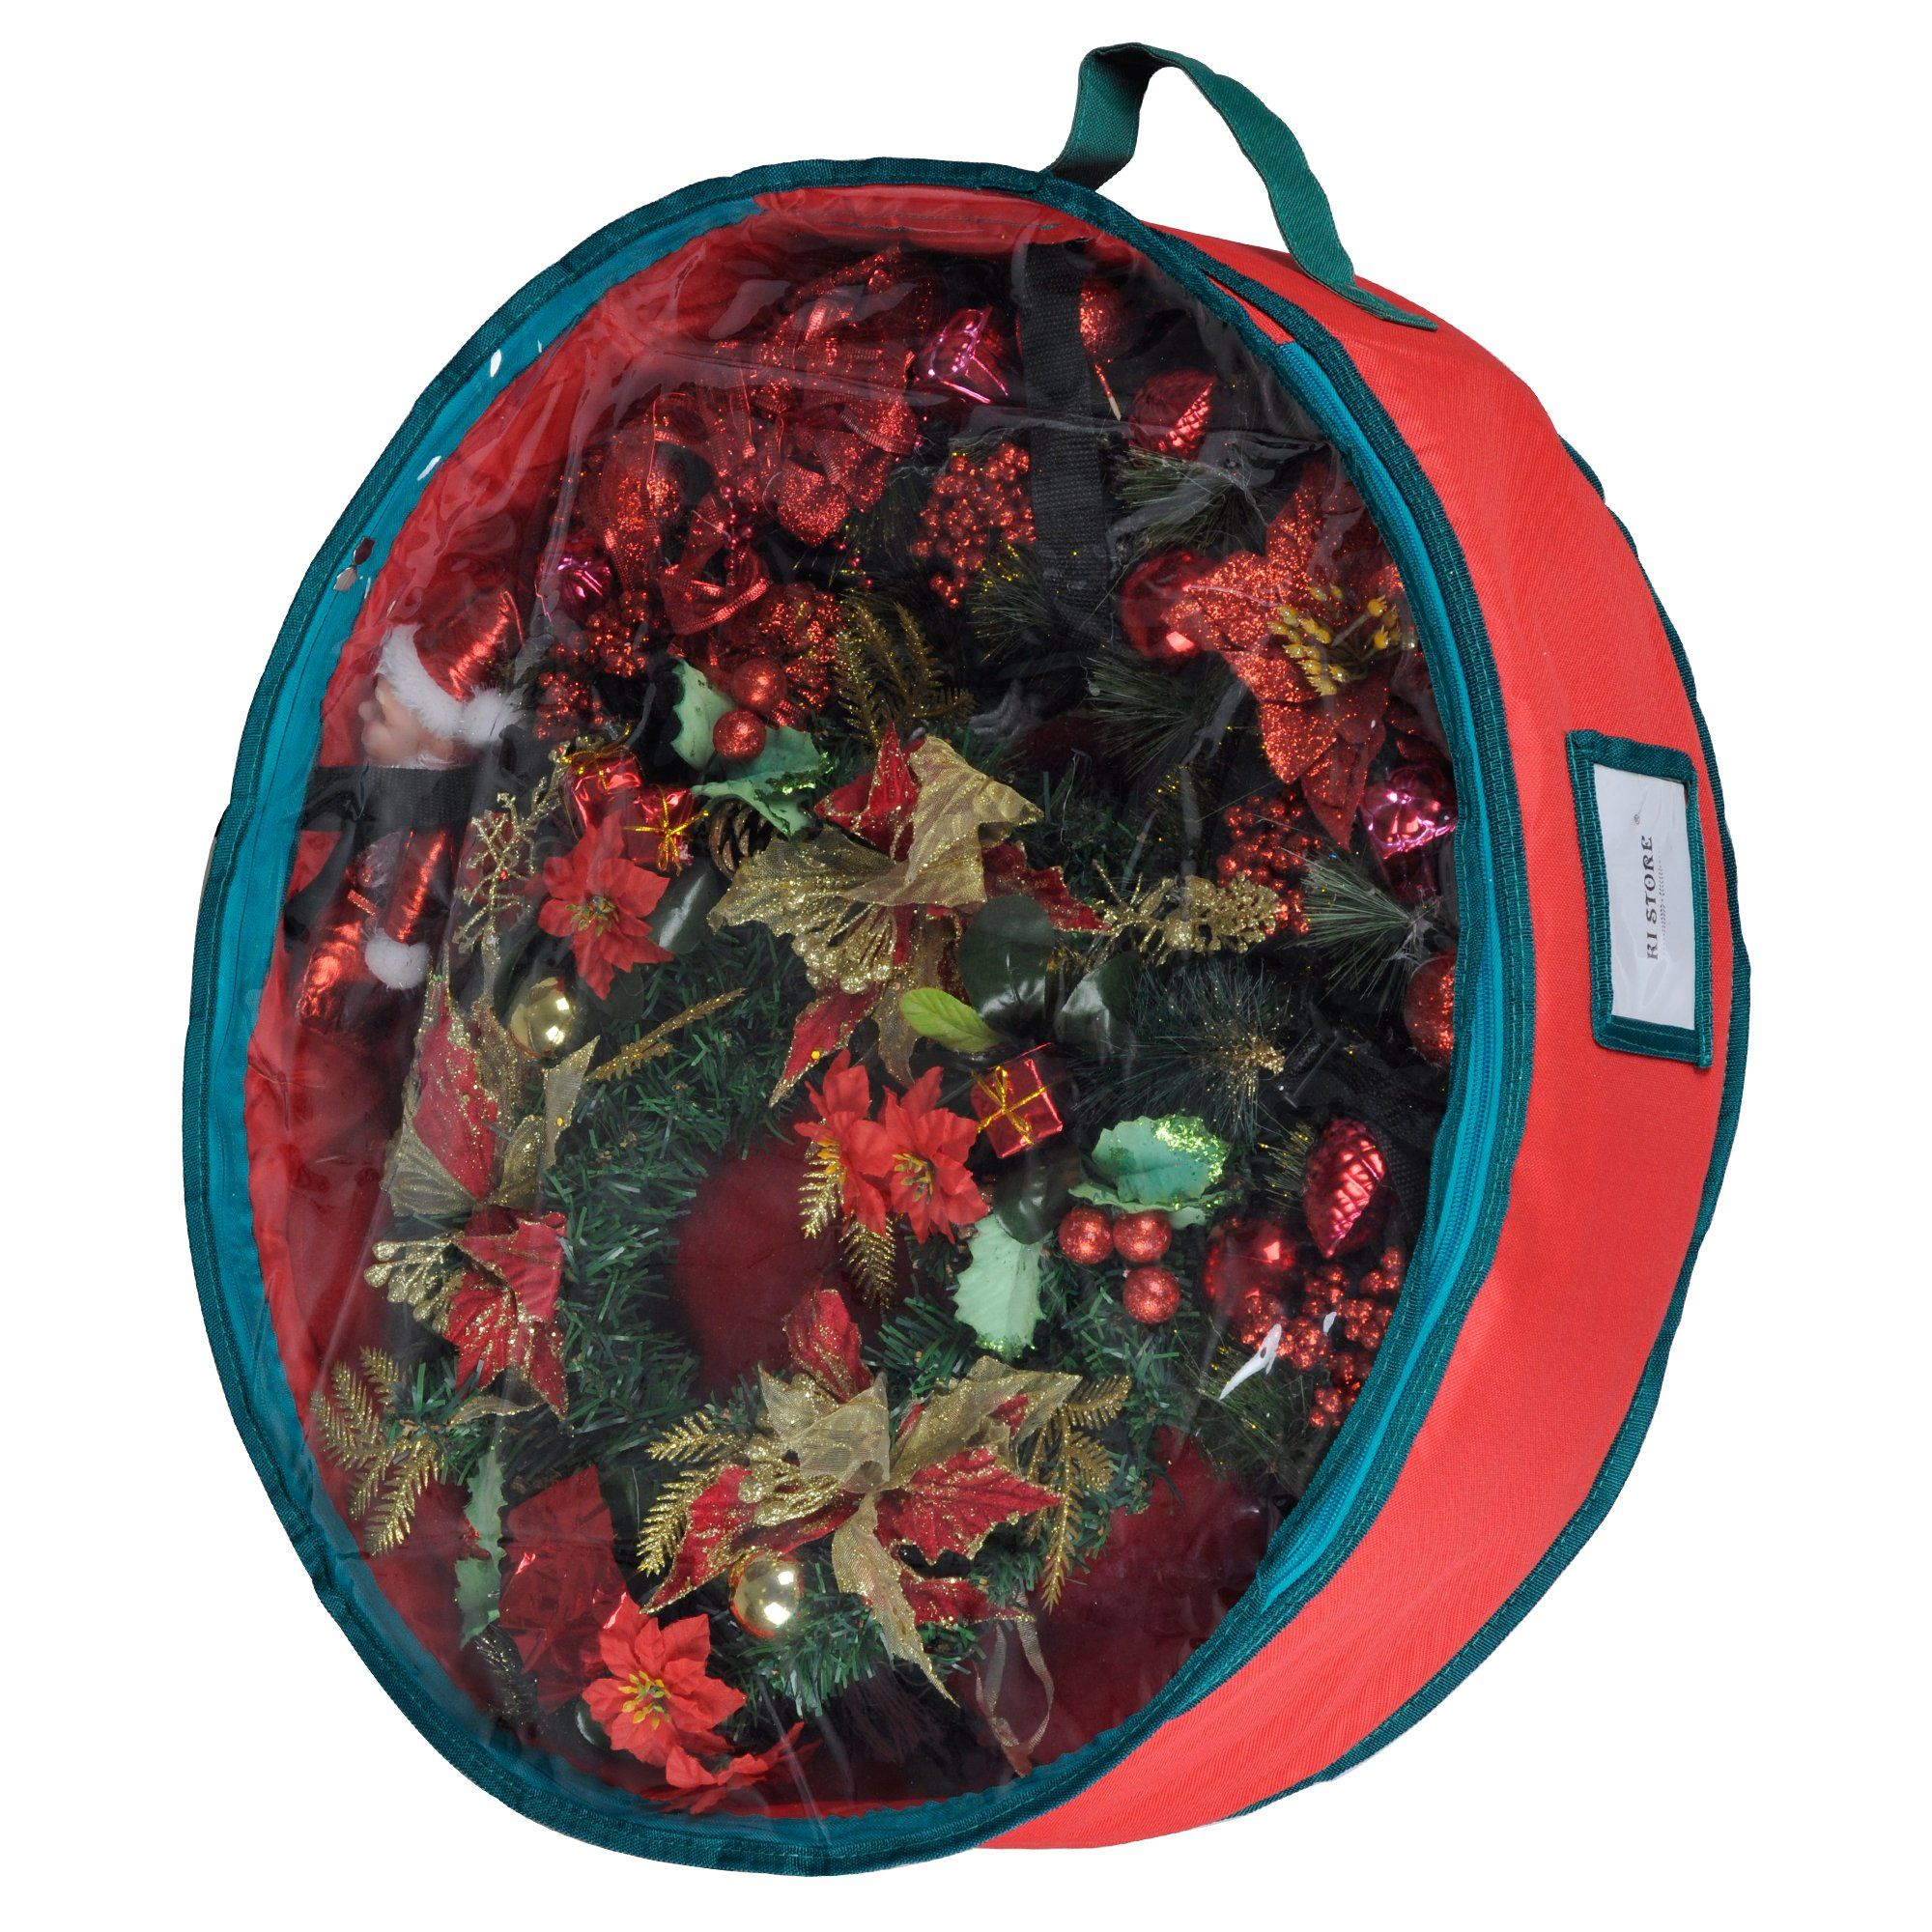 Wreath Storage Container Bag with Clear Lid KI Store 24 Inch